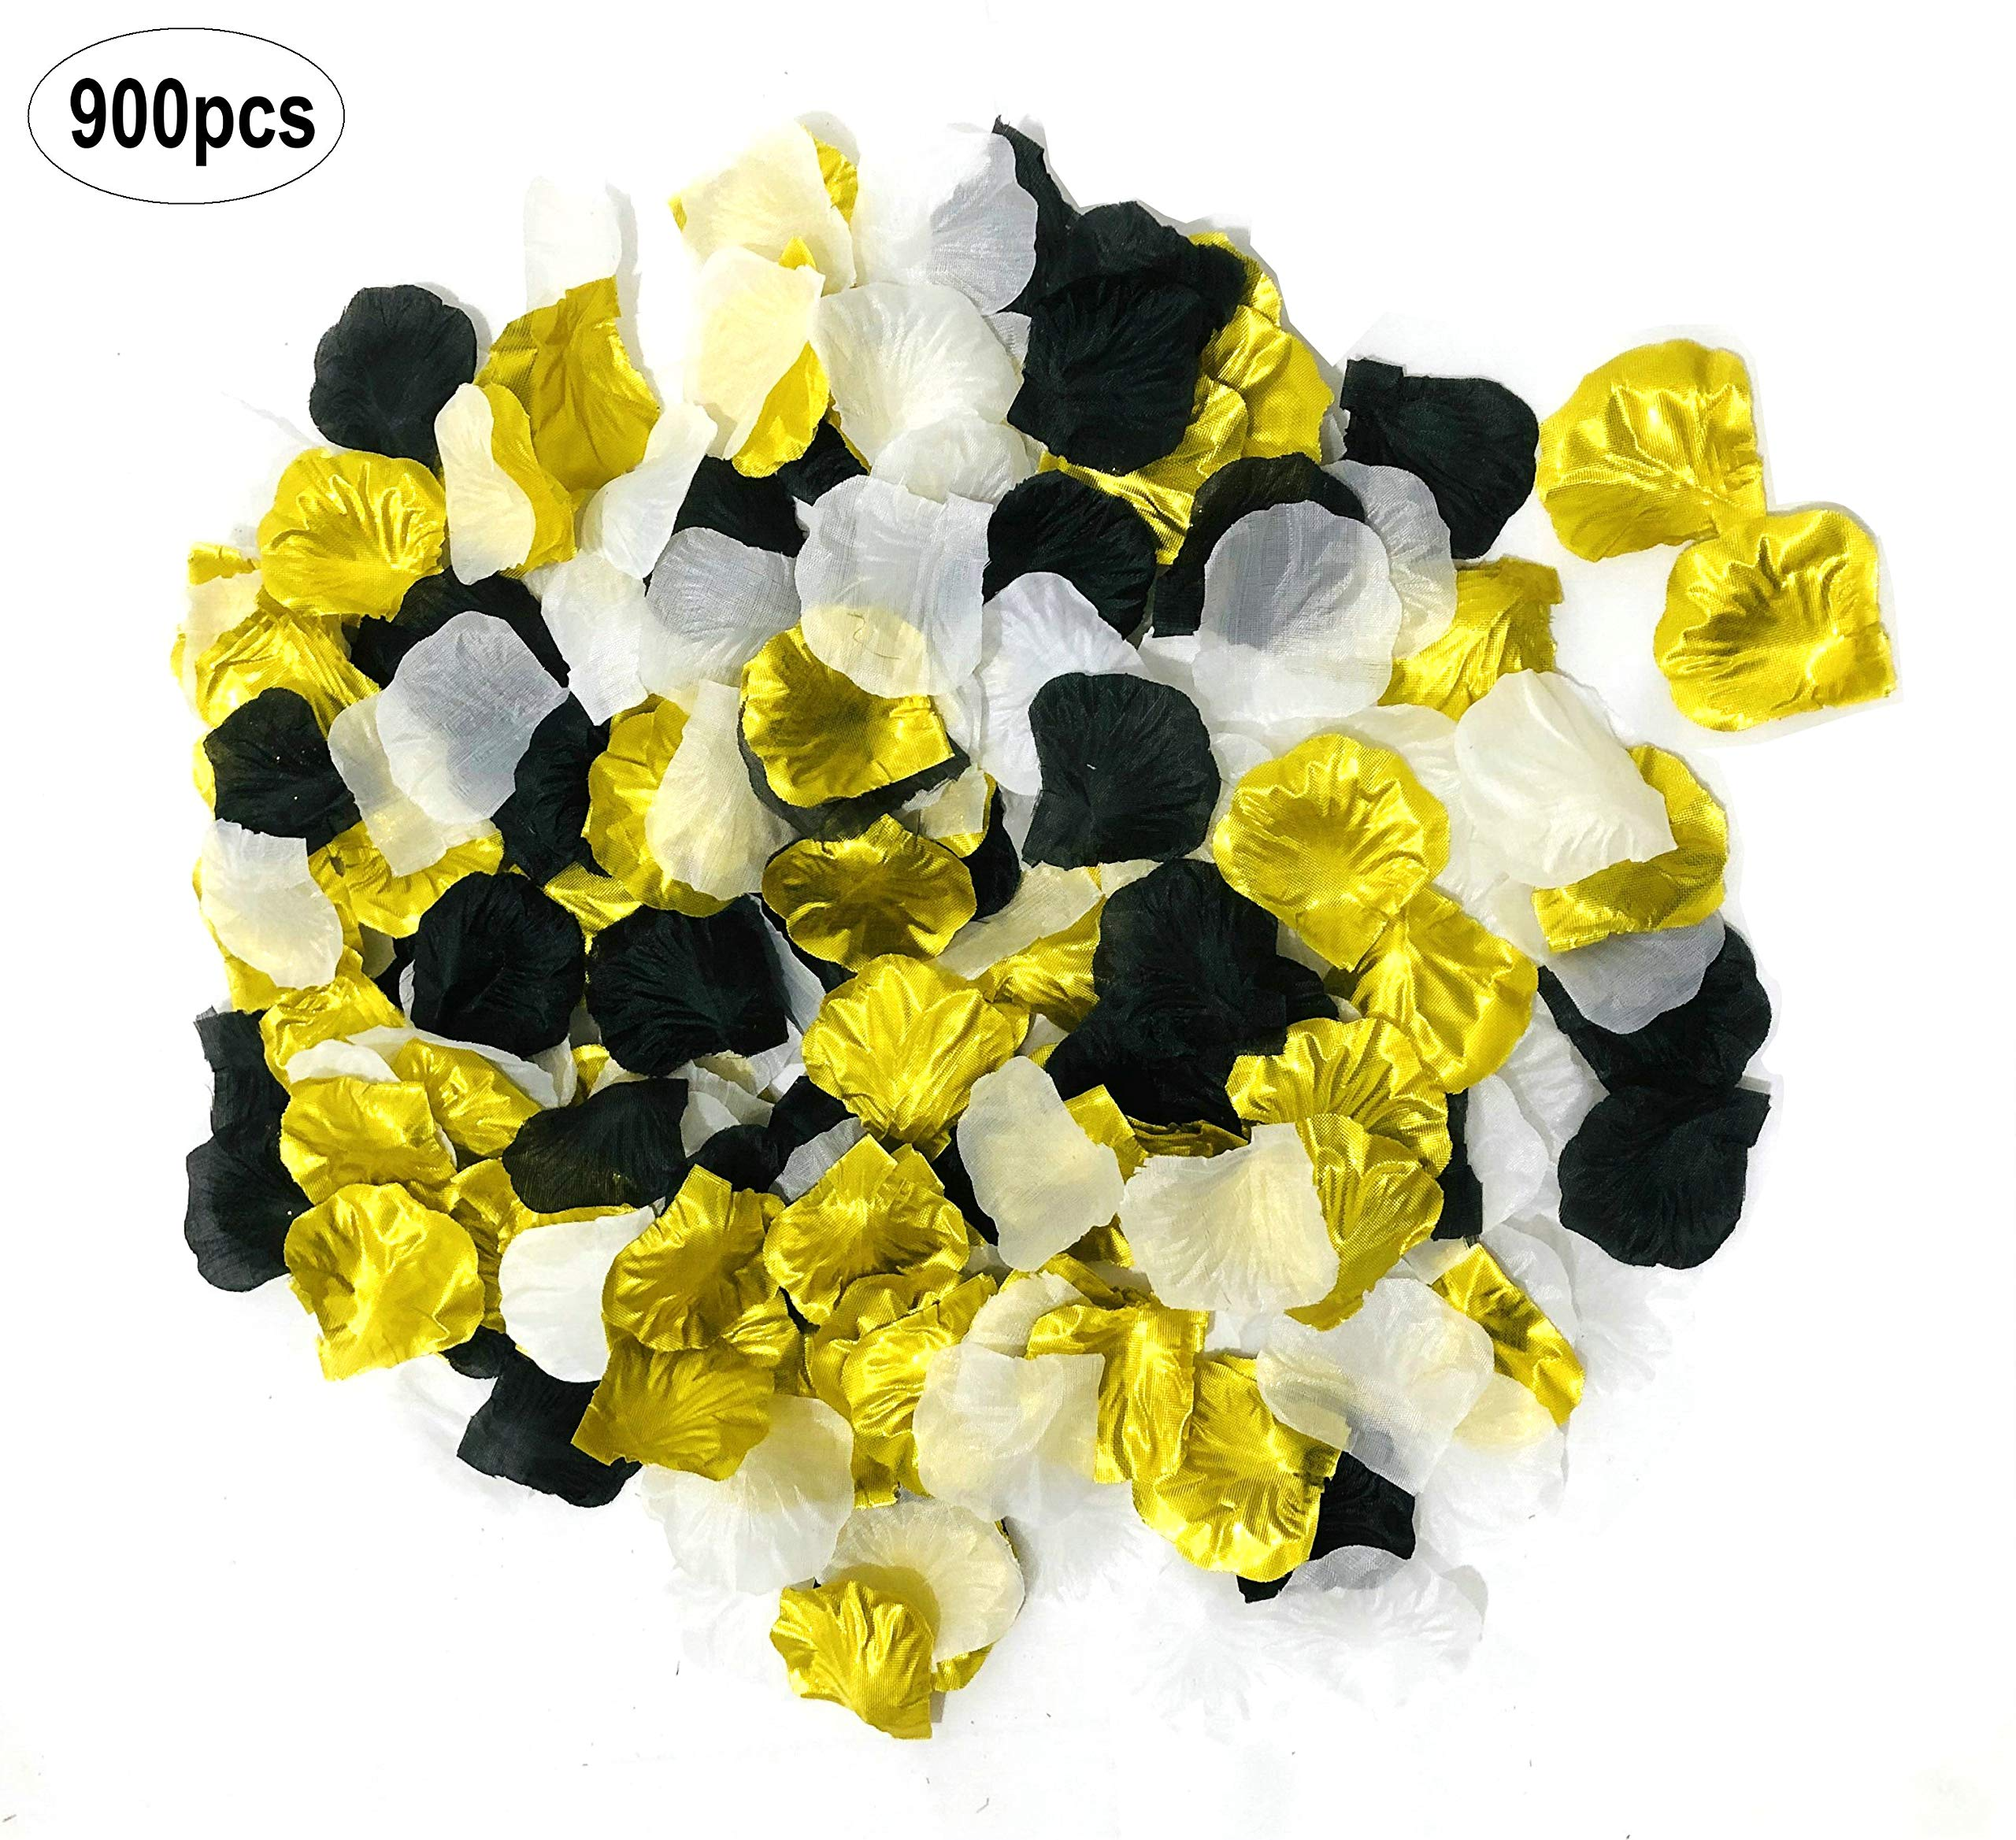 Sogorge-900-Pack-Mixed-Gold-Black-White-Artificial-Flowers-Silk-Rose-Petals-Flower-Girl-Scatter-Petals-for-Wedding-Aisle-Centerpieces-Table-Confetti-Party-Favors-Home-Decoration